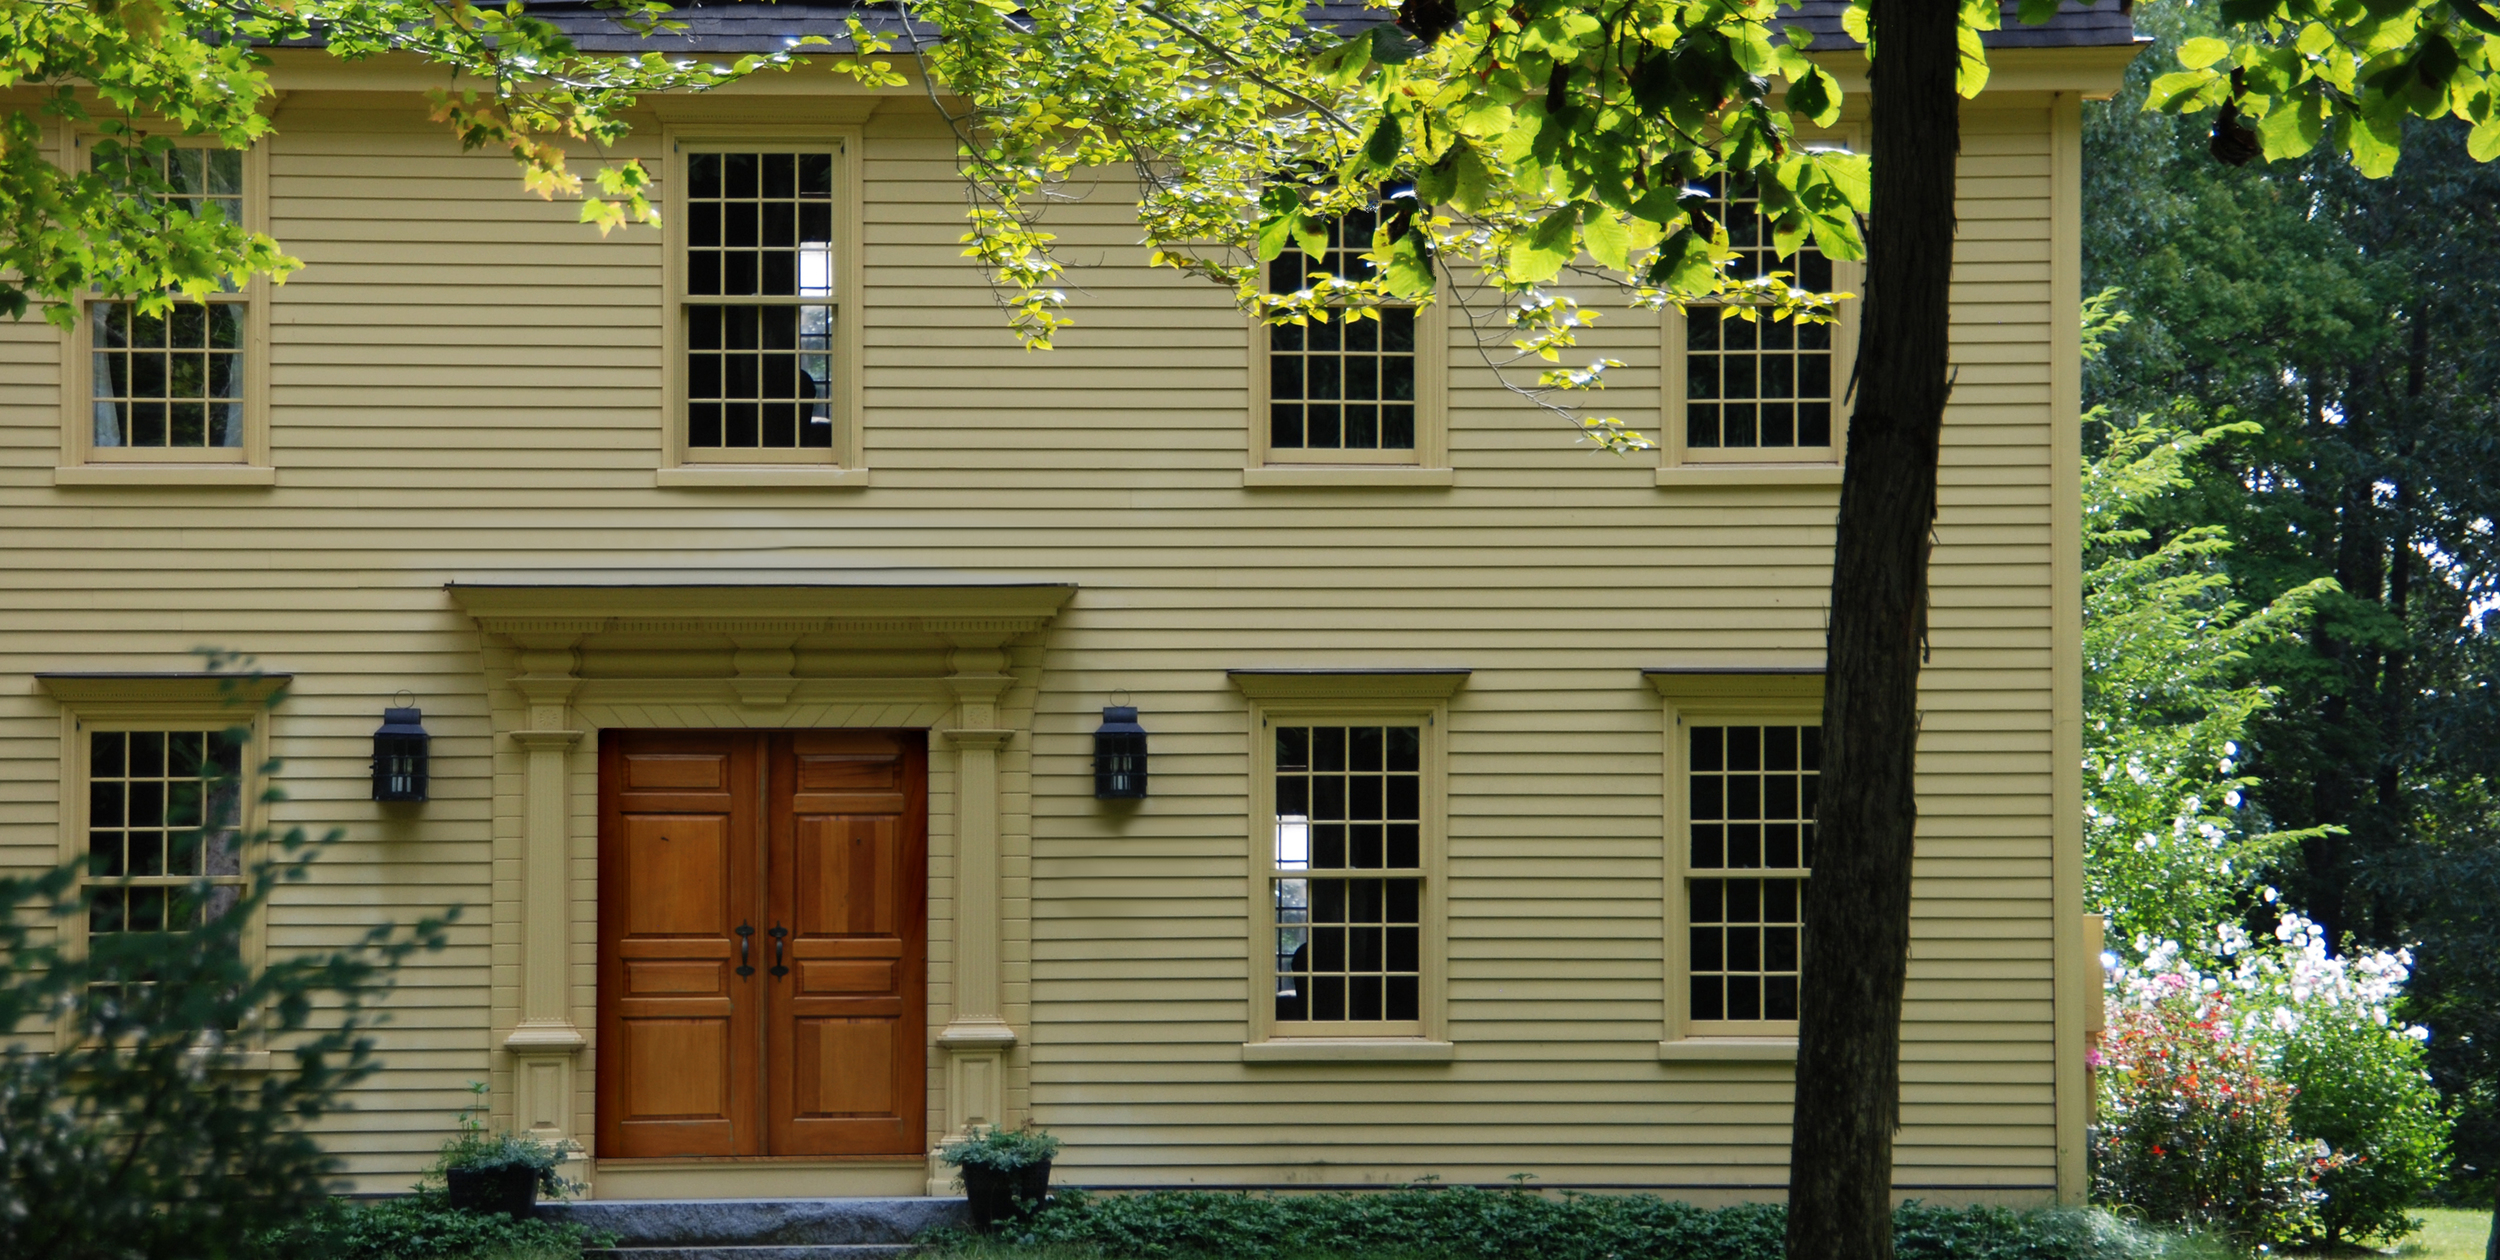 Windows Doors Colonial Exterior Trim And Siding Windows Doorscolonial Widows And Doors Windows Doorscolonial Home Designs Windows Doorsauthetic Colonial Homes Windows Doorssaltbox Home Designs Windows